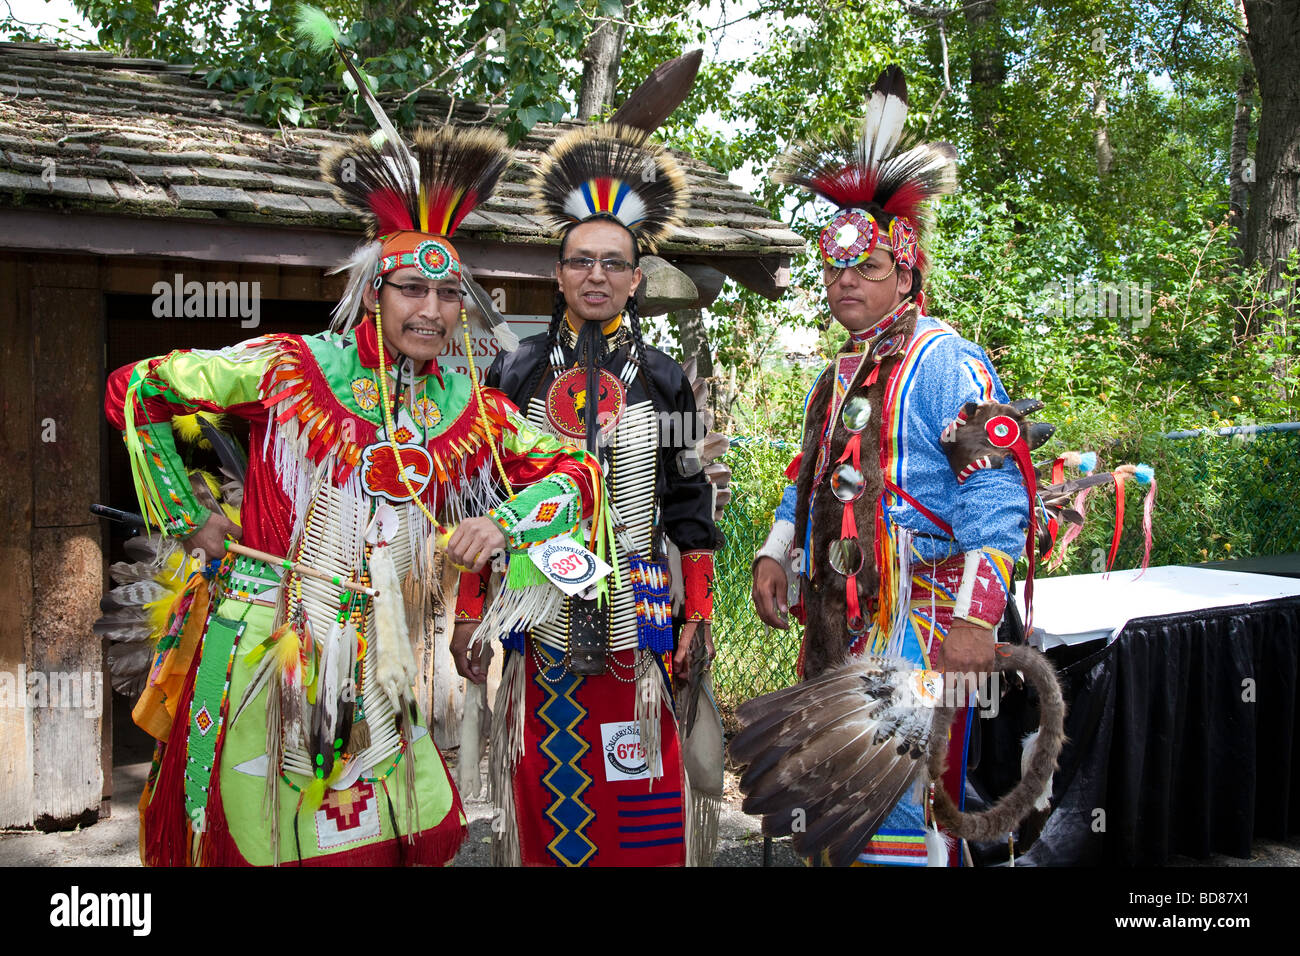 North American Plains Native Indian in traditional dress at Pow Wow in the Indian Village at the Calgary Stampede - Stock Image